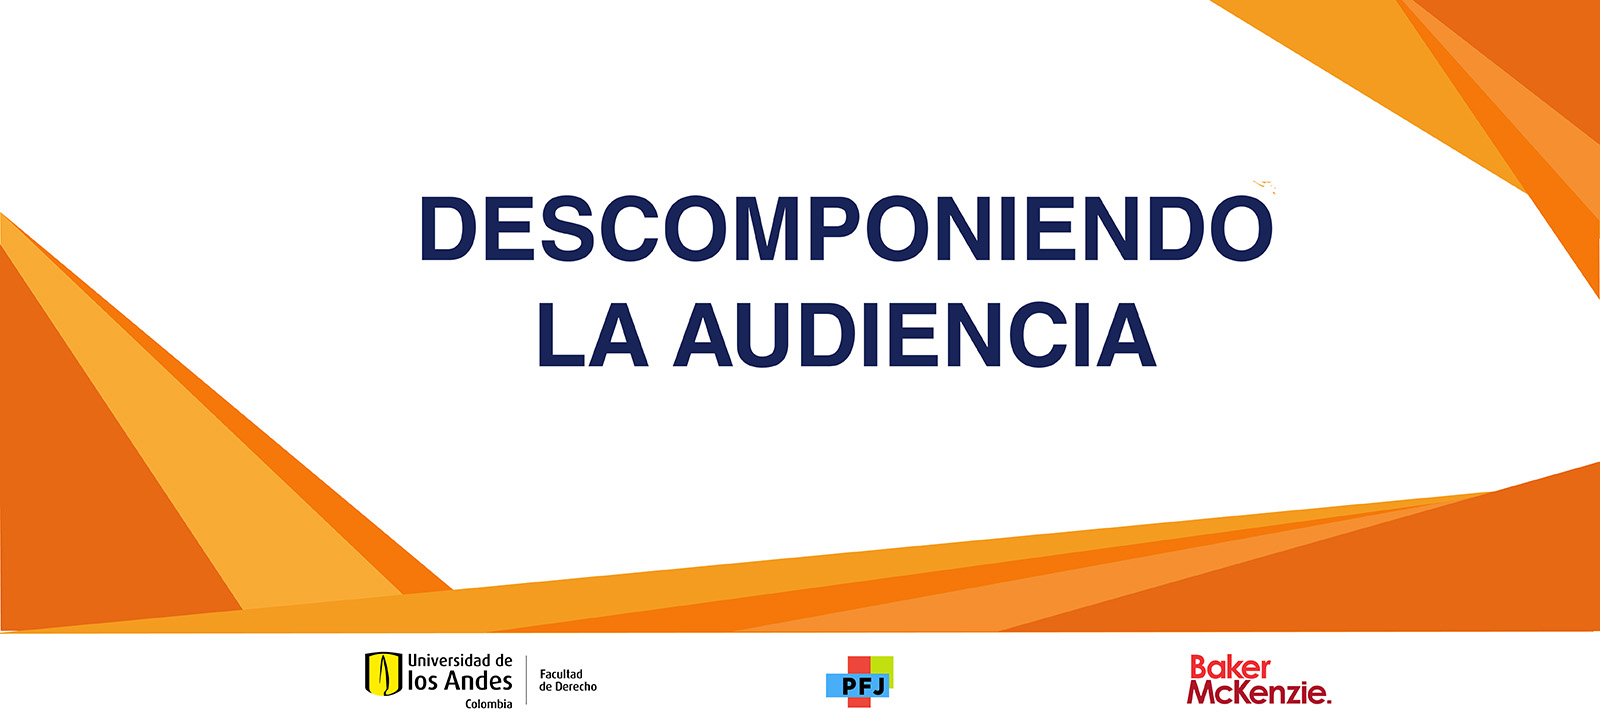 Descomponiendo la audiencia